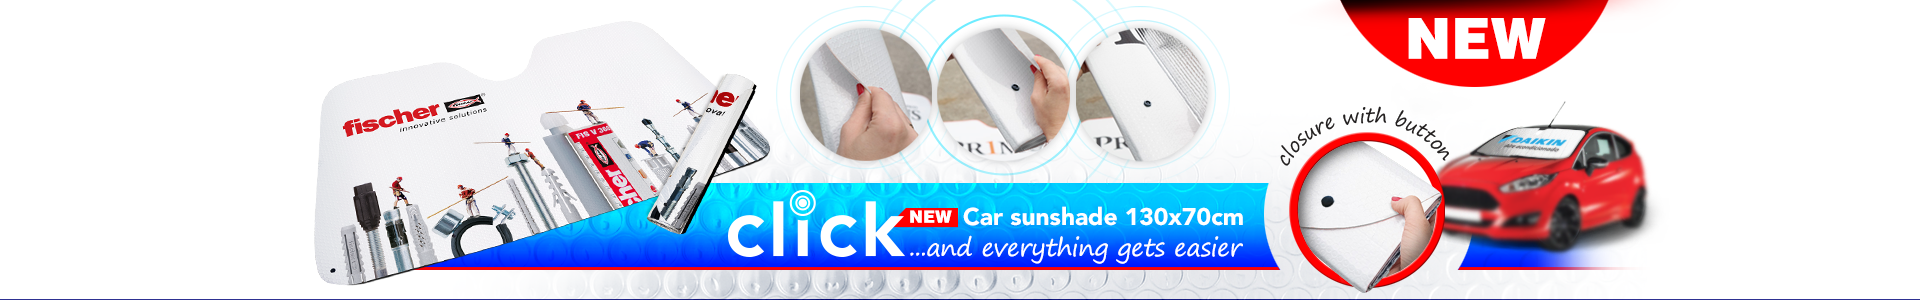 New Car Sunshade Click